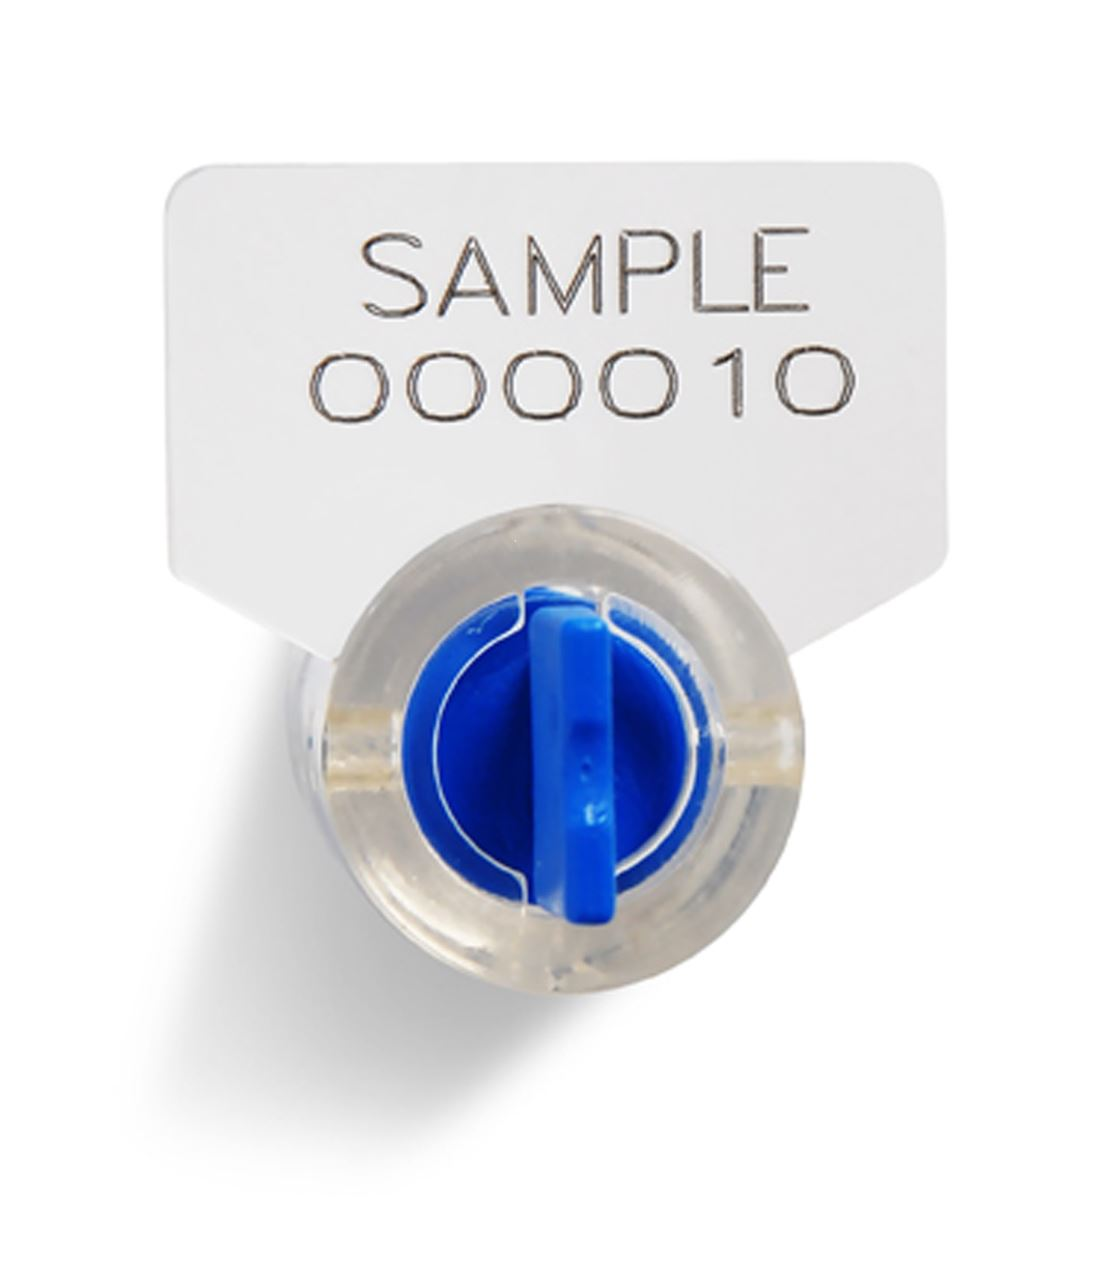 Picture of Twister Security Meter Seal